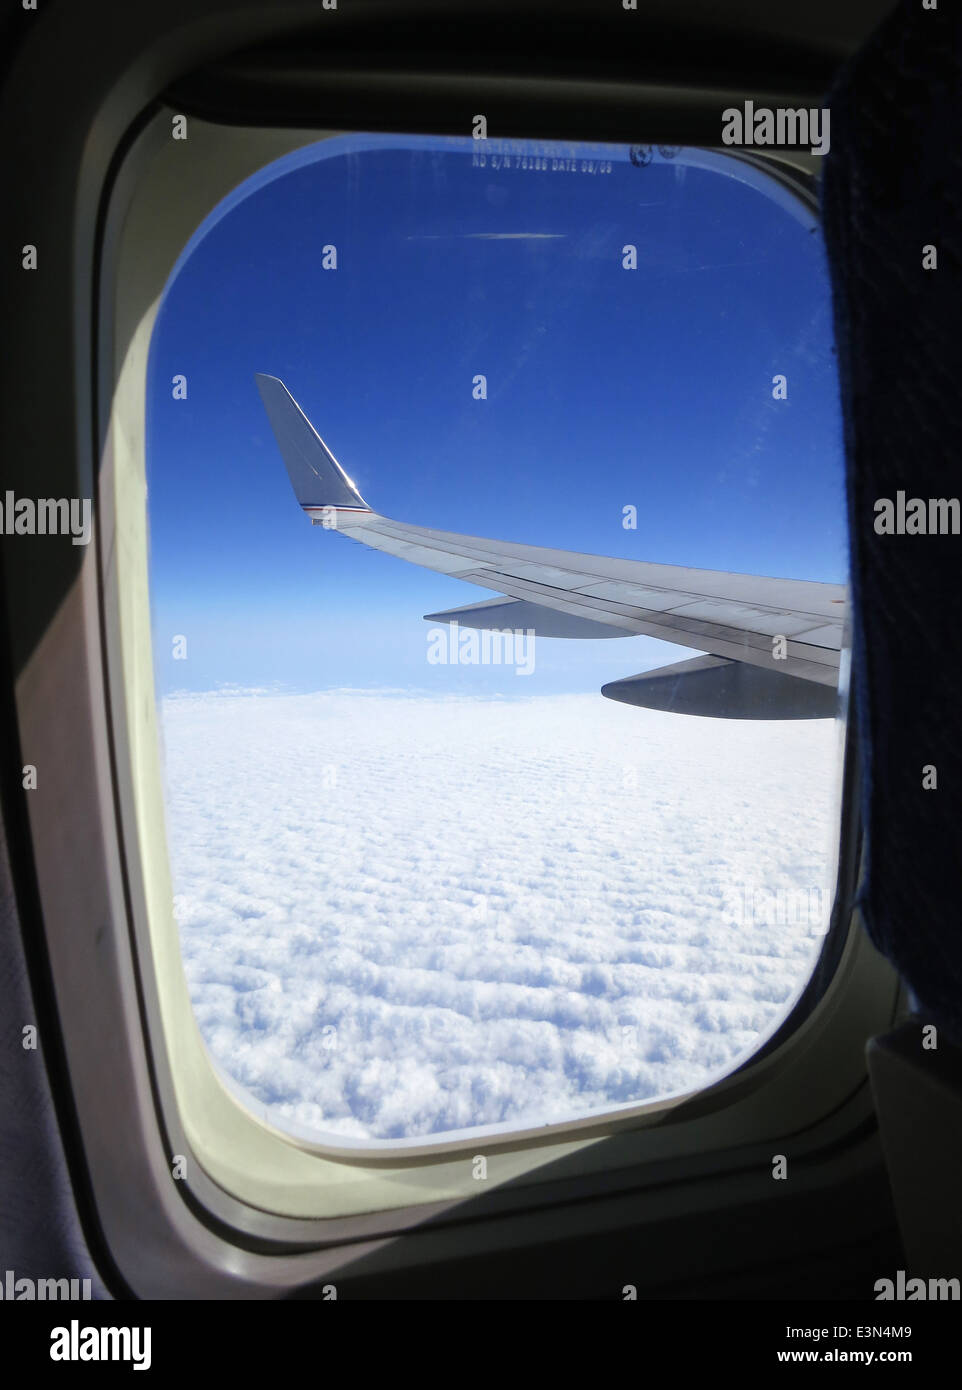 View out of airline window while flying across the United States of America. - Stock Image